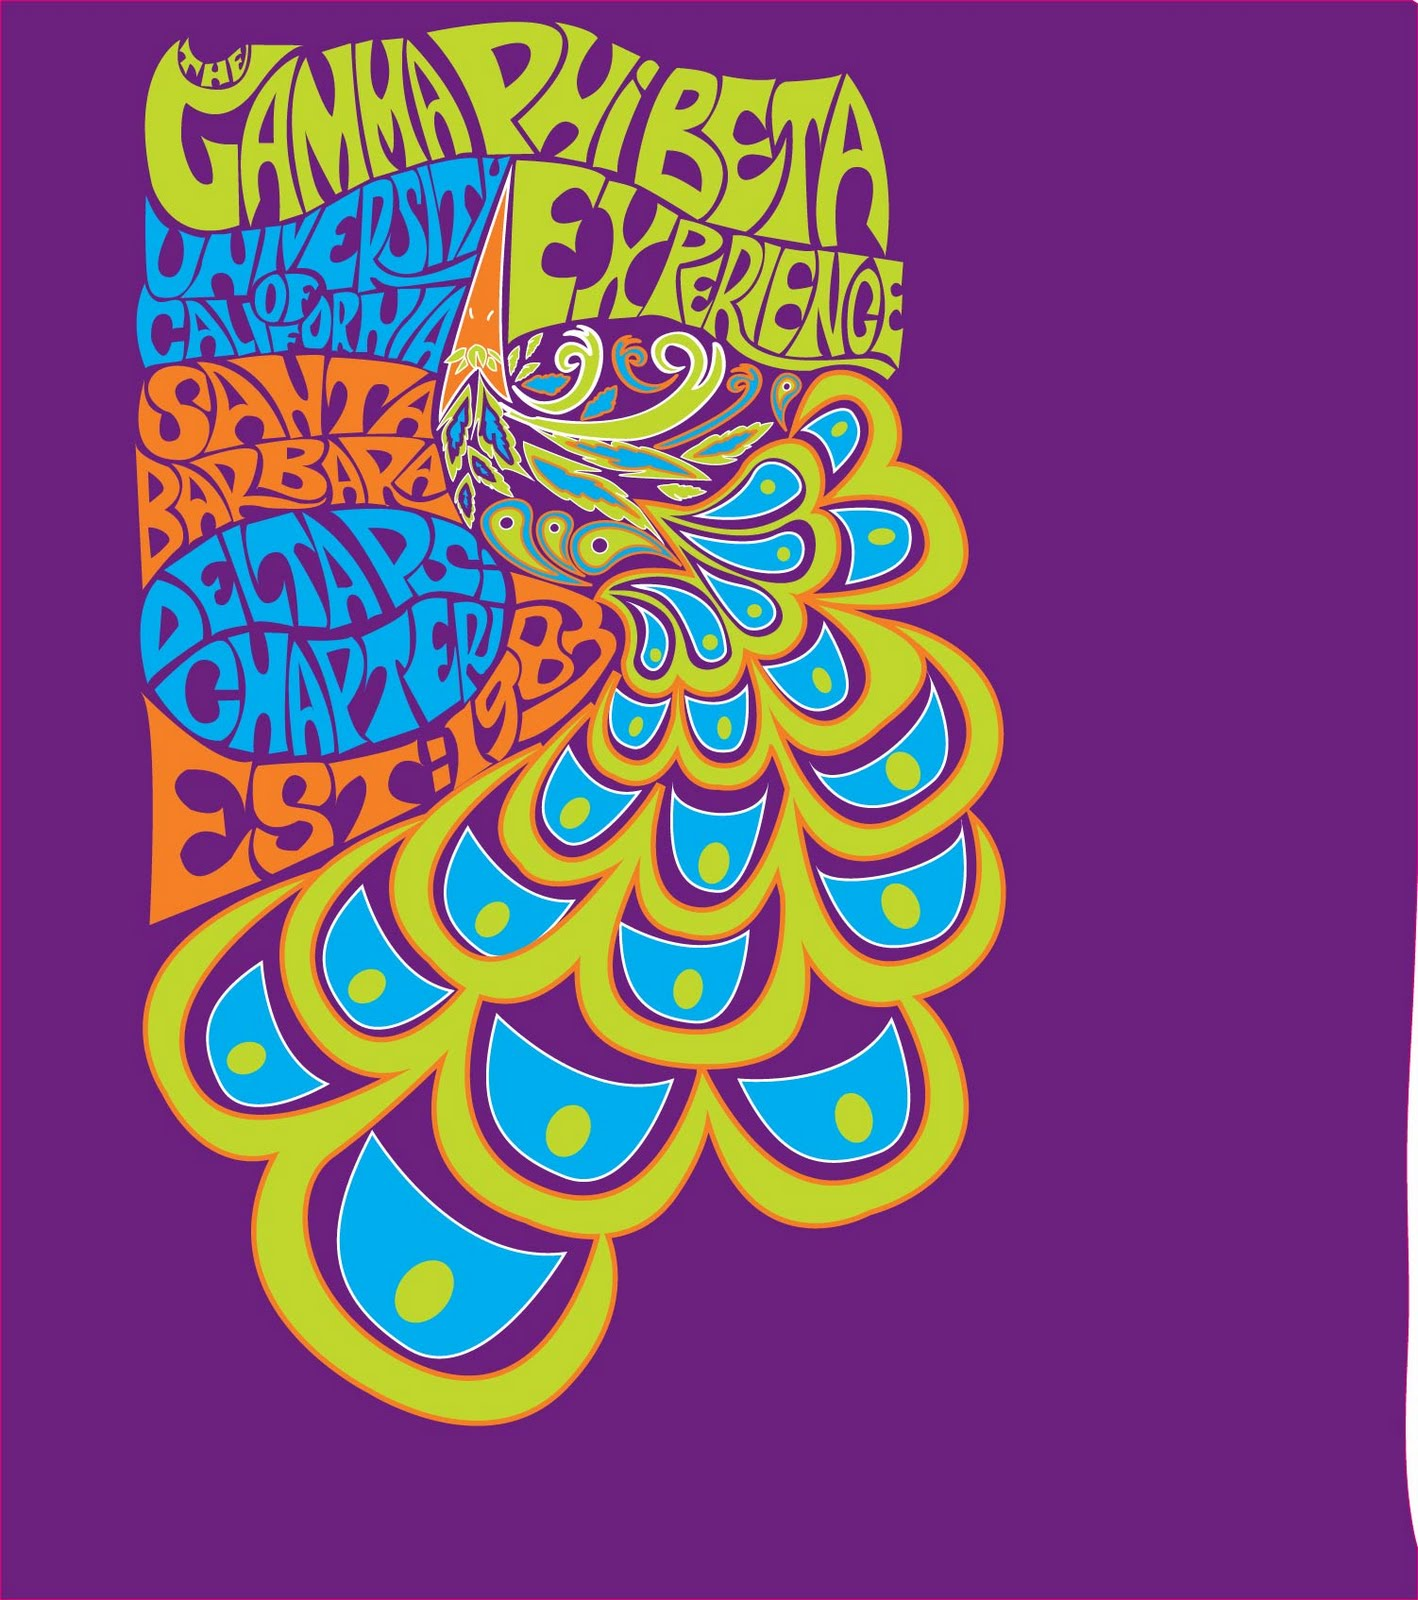 70s poster design - The Purple One Will Be The Hoodie Sweatshirt An It Goes After A 70s Music Poster Theme Keep In Mind The Demographic For The First Design That Will Go On